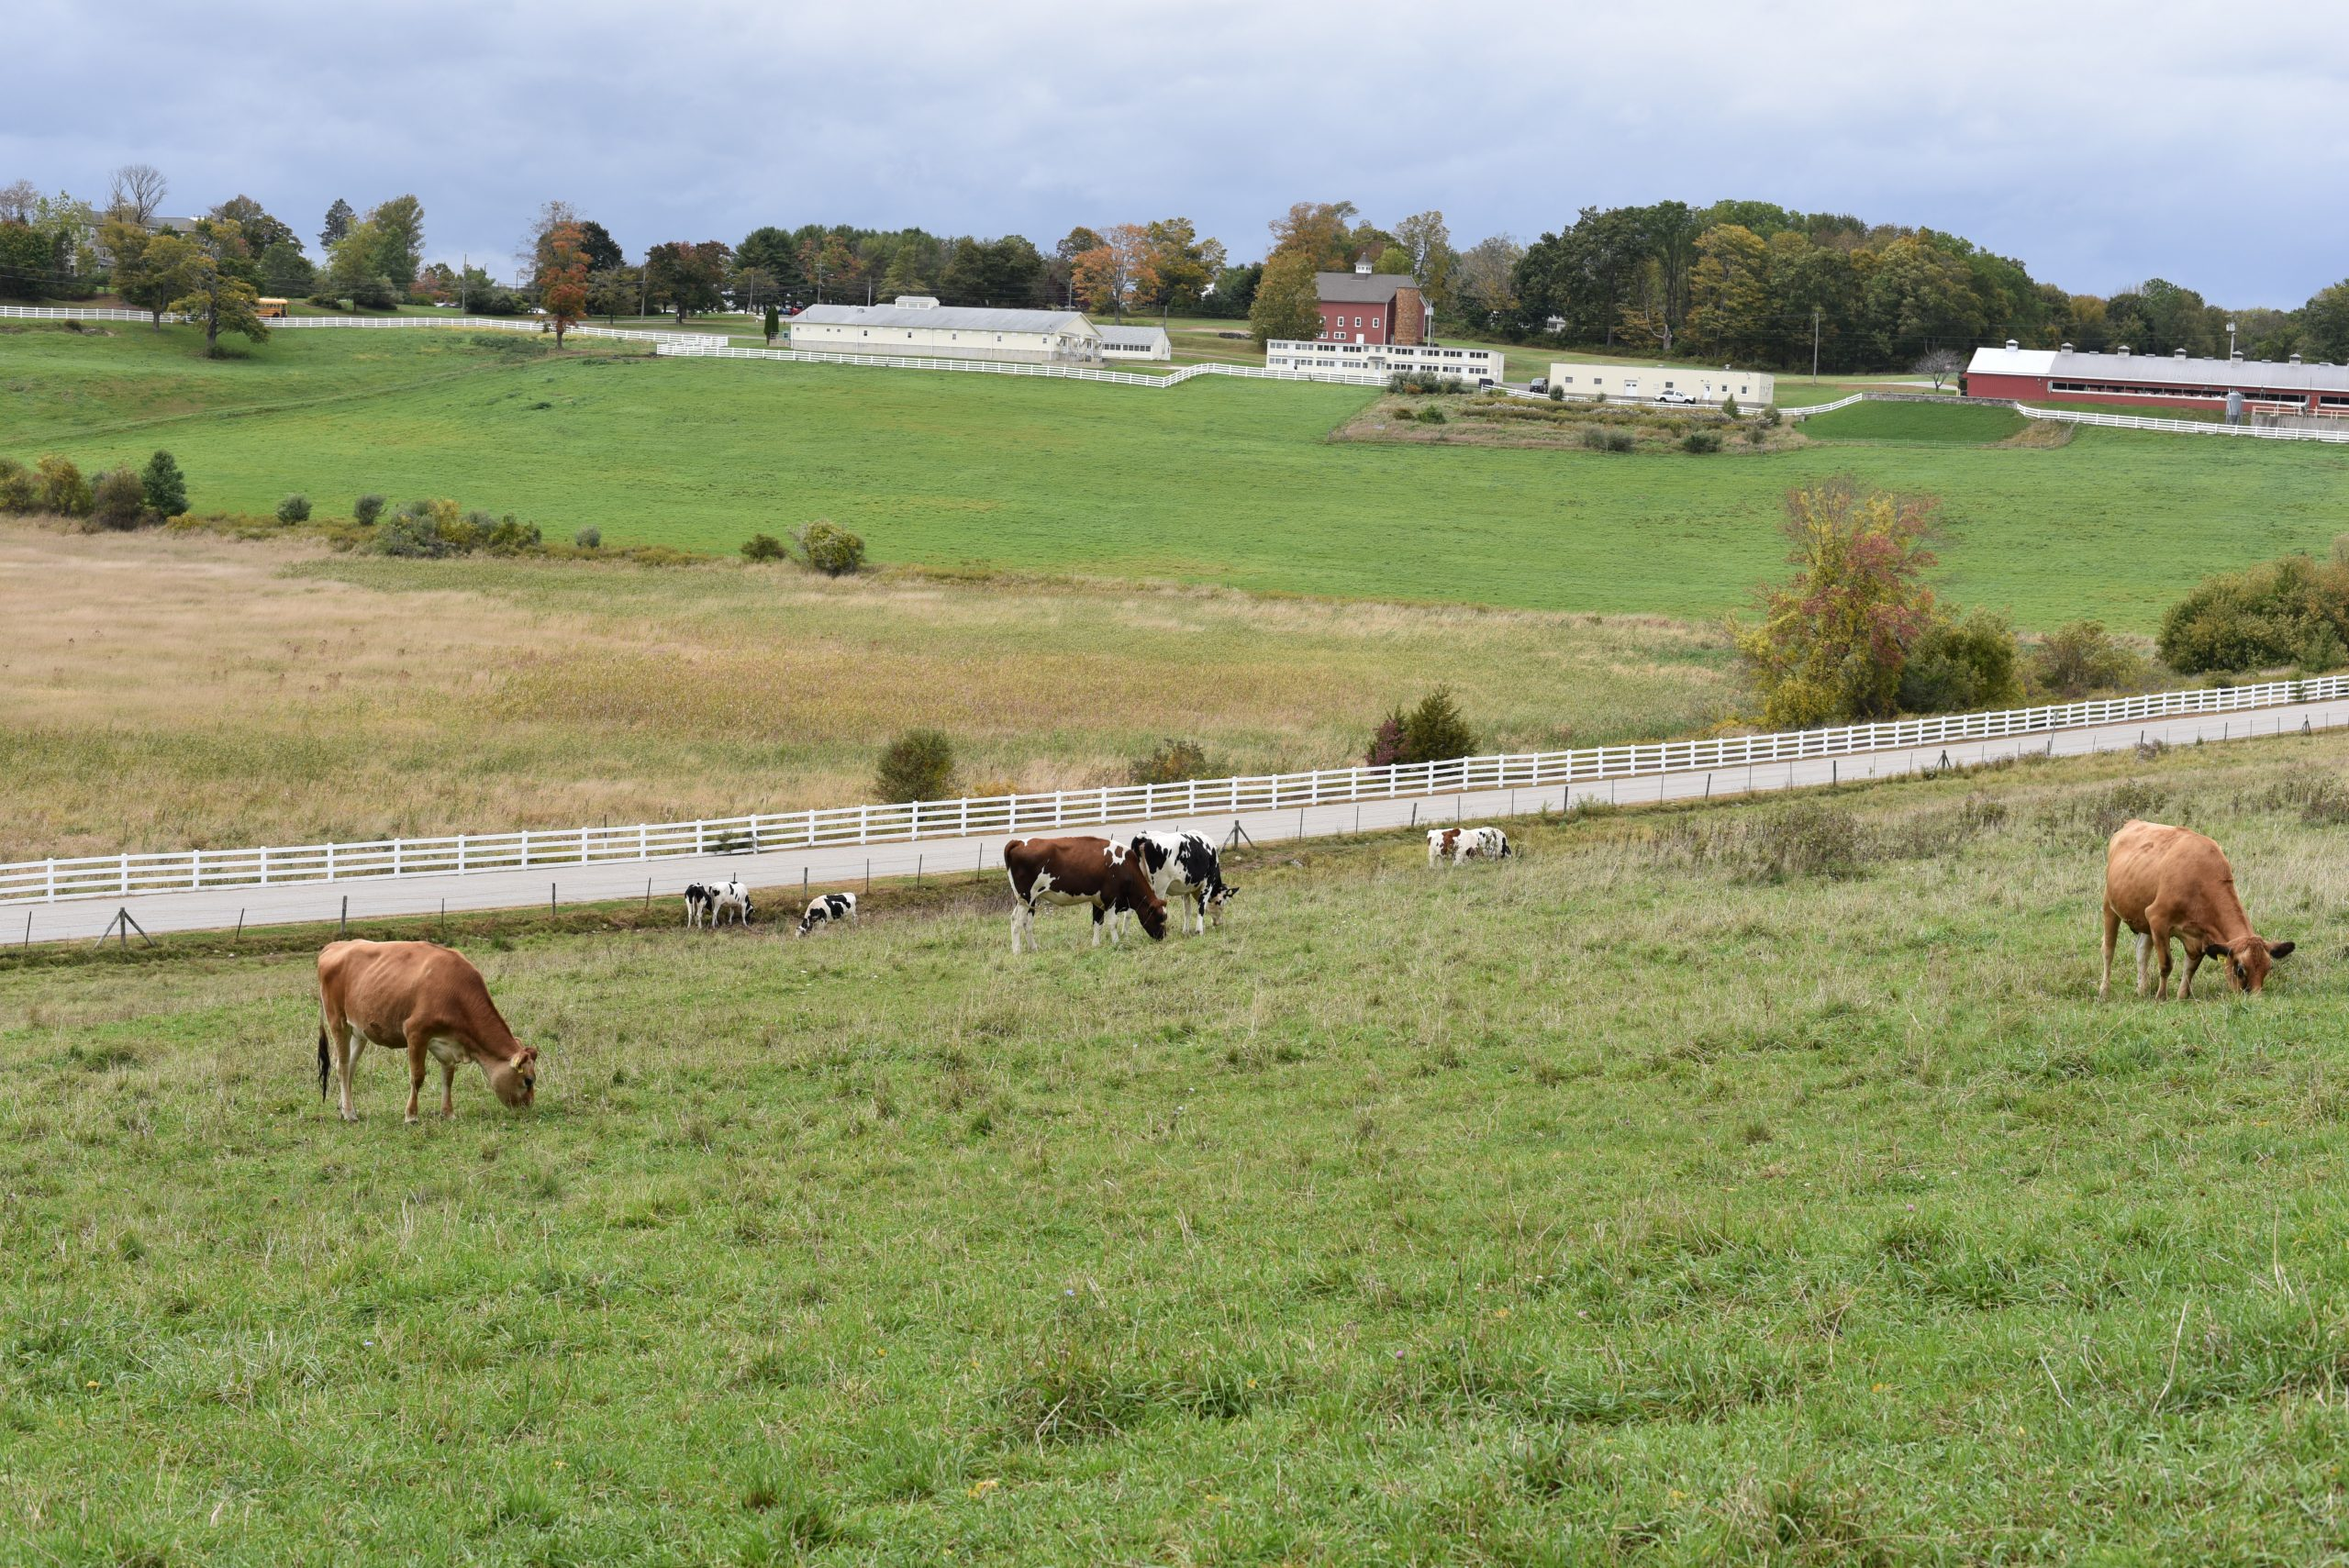 Jersey and Holstein cows graze on Horsebarn Hill in Storrs.